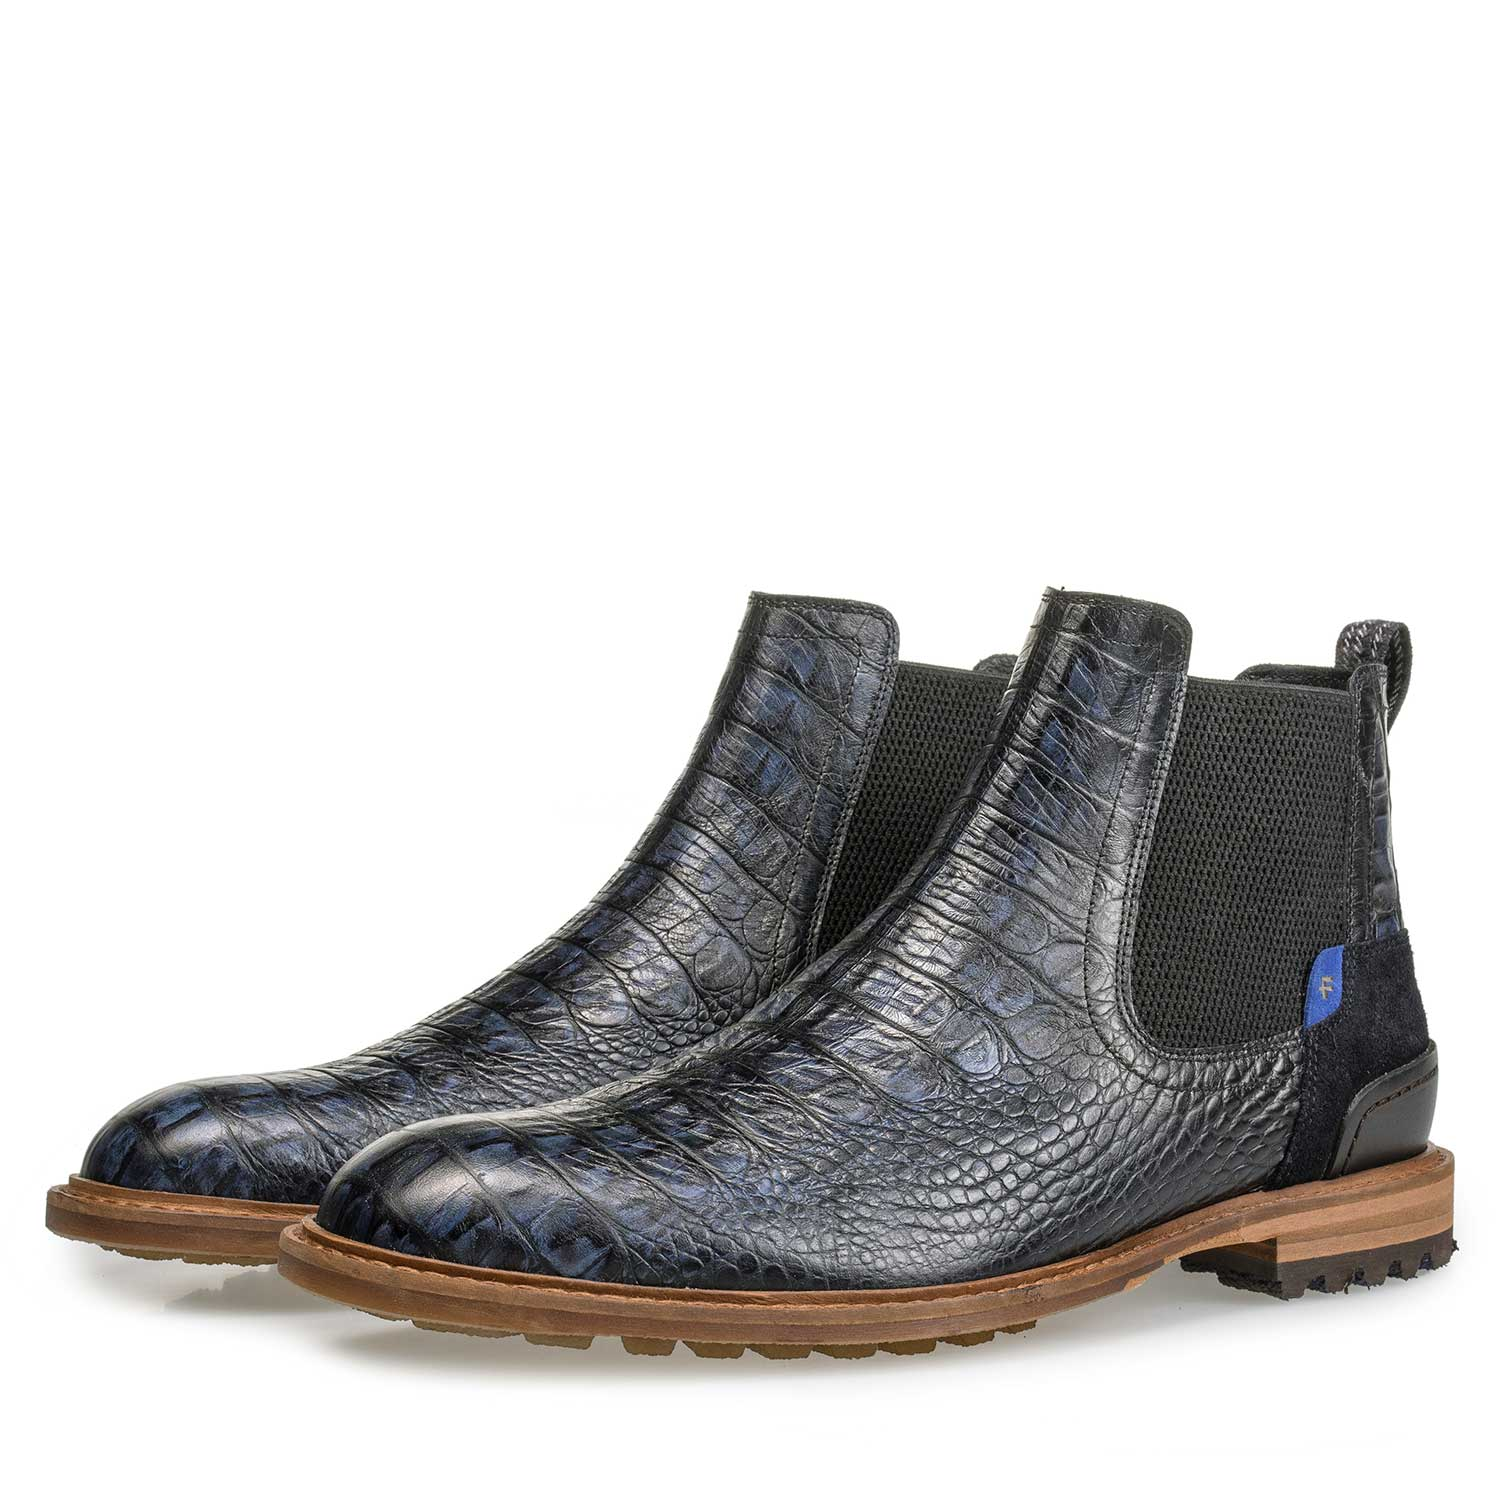 10230/13 - Blue leather Chelsea boot with croco print